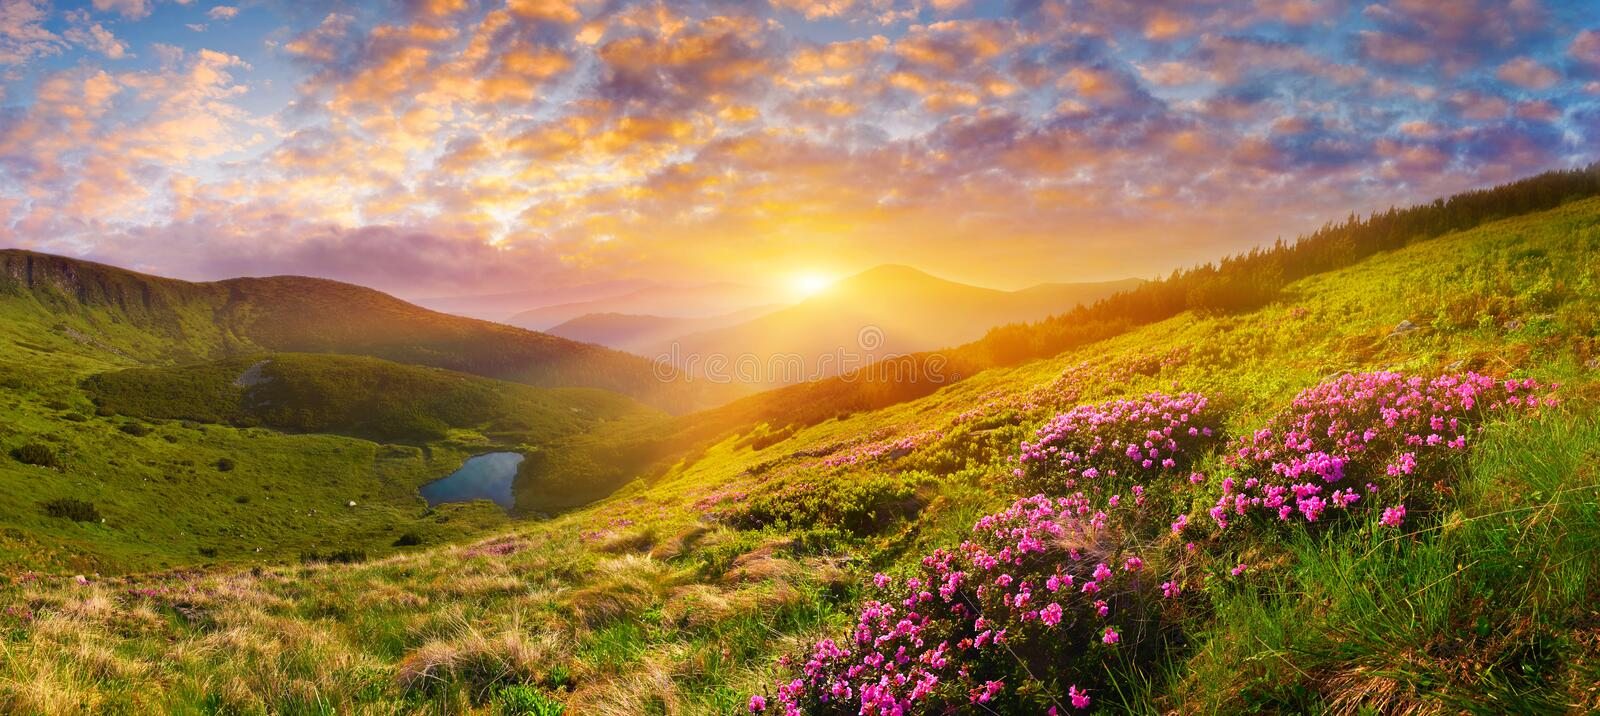 Blooming wild pink flowers and rising sun in highland. Breathtaking landscape with blossom of pink rhododendron over the mountain lake at sunrise stock image